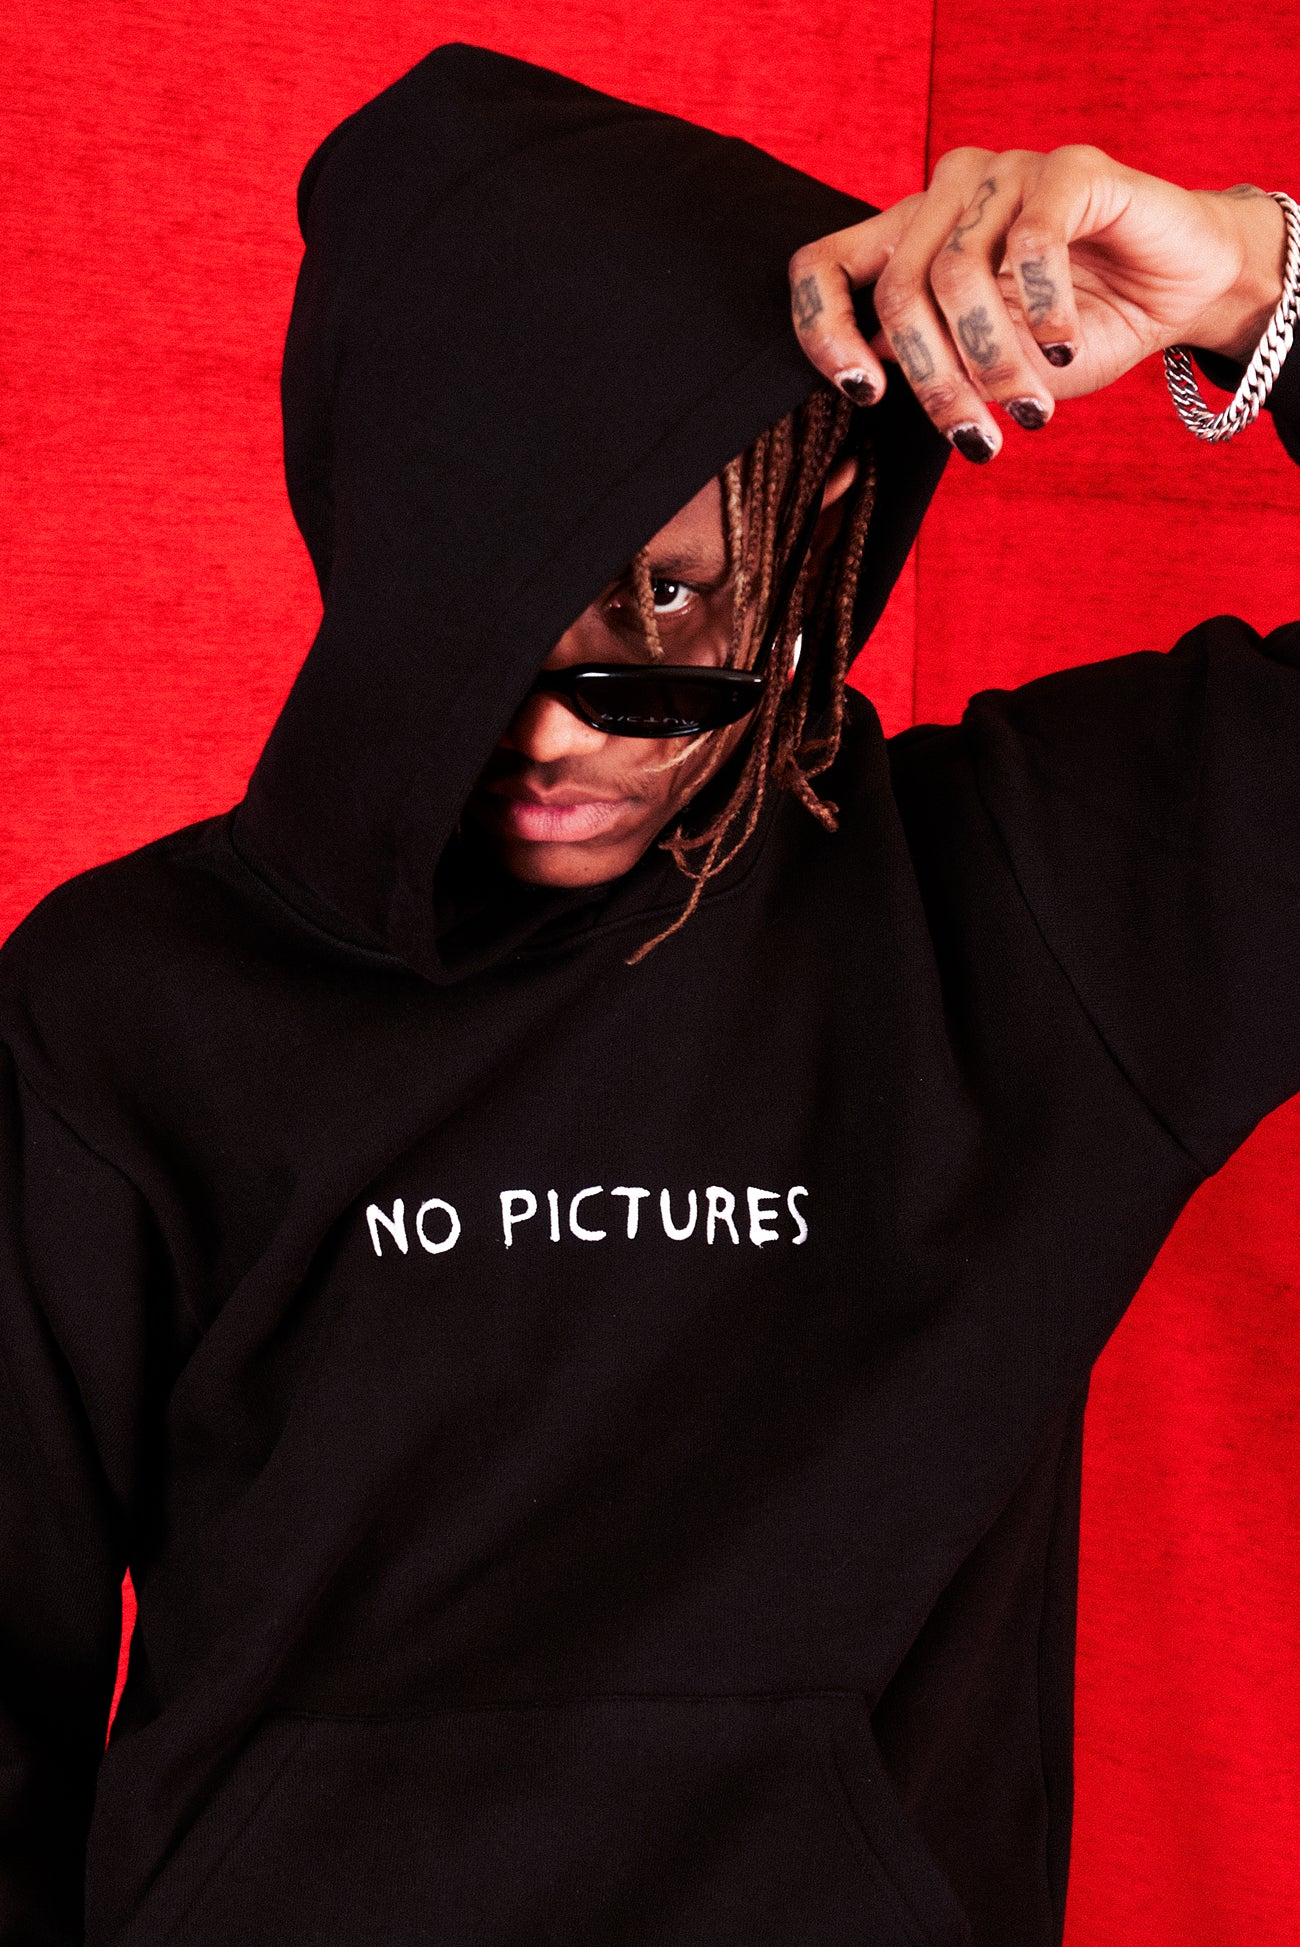 NO PICTURES HOODIE